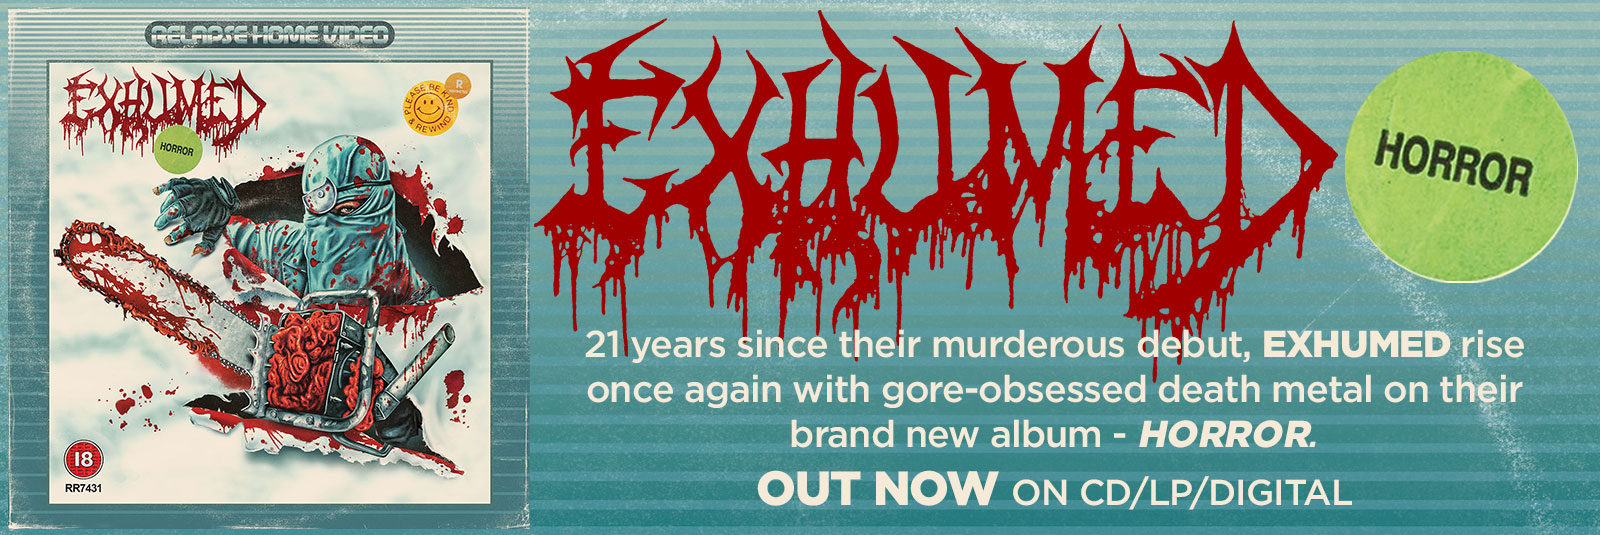 exhumed-horror-death-metal-grindcore-relapse-out-now